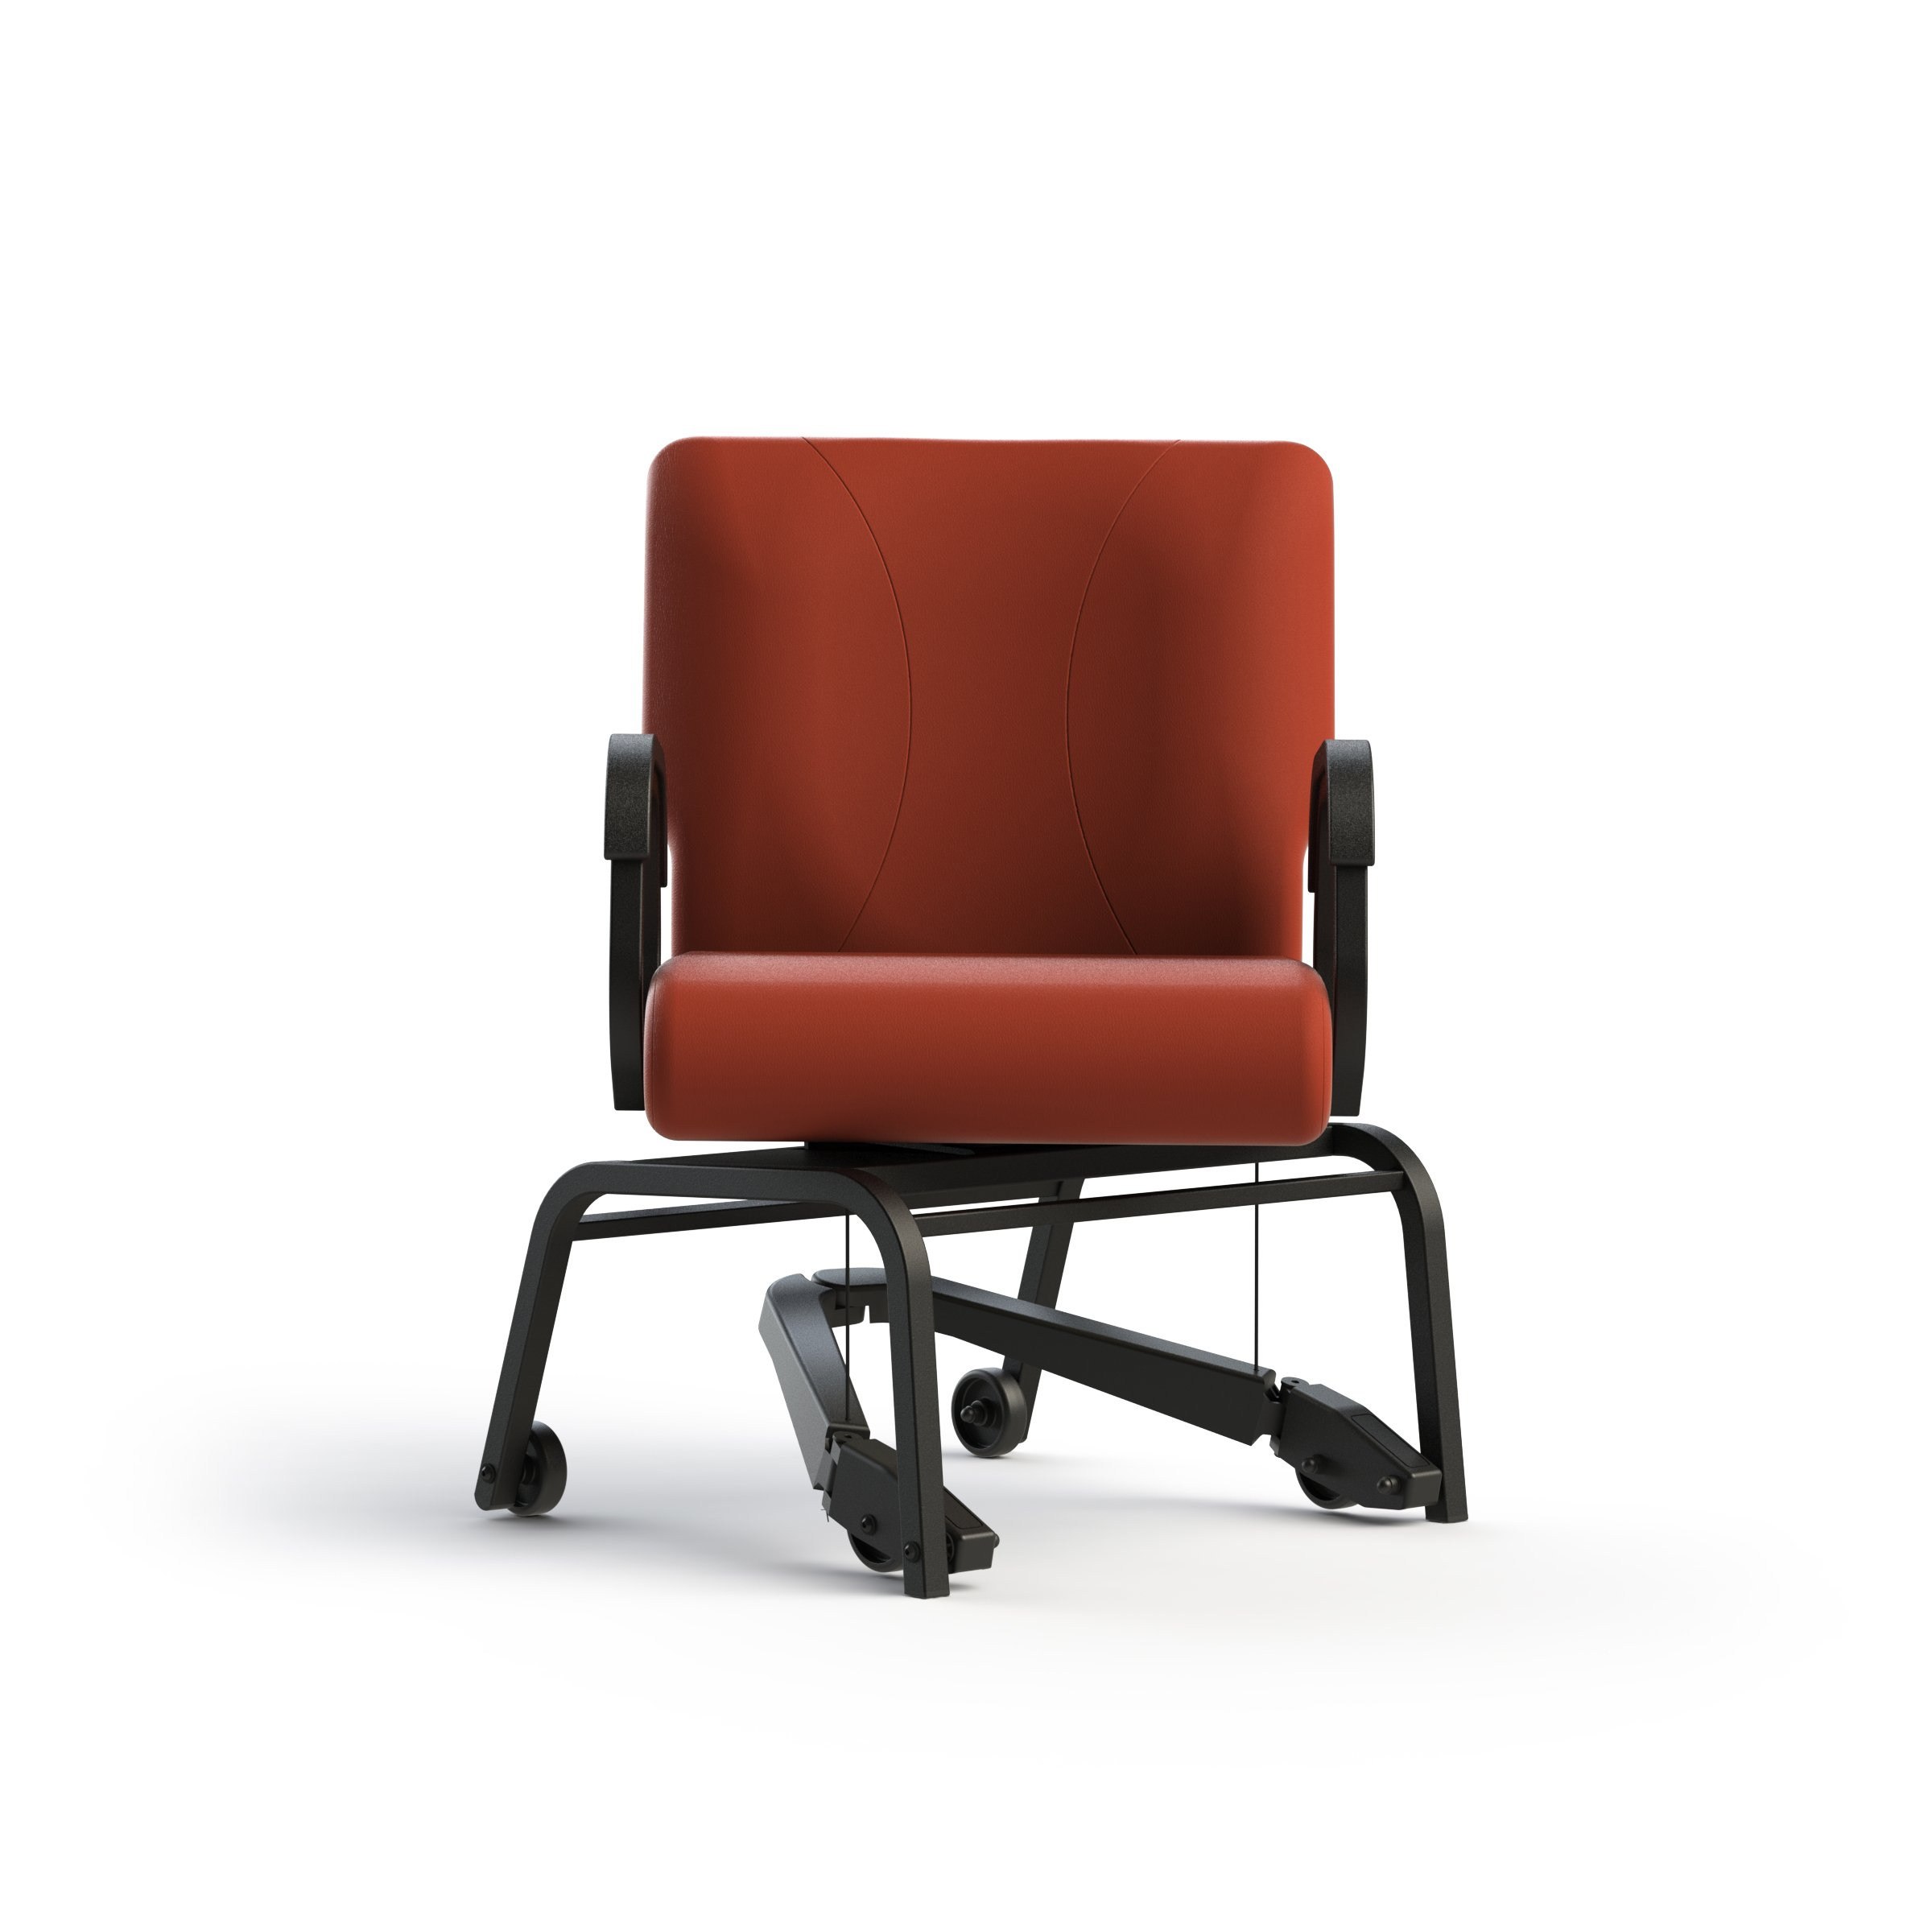 Kitchen / dining chair w/ swivel & mobility assist lever, rated 250 lbs. ( - it swivels and rolls)